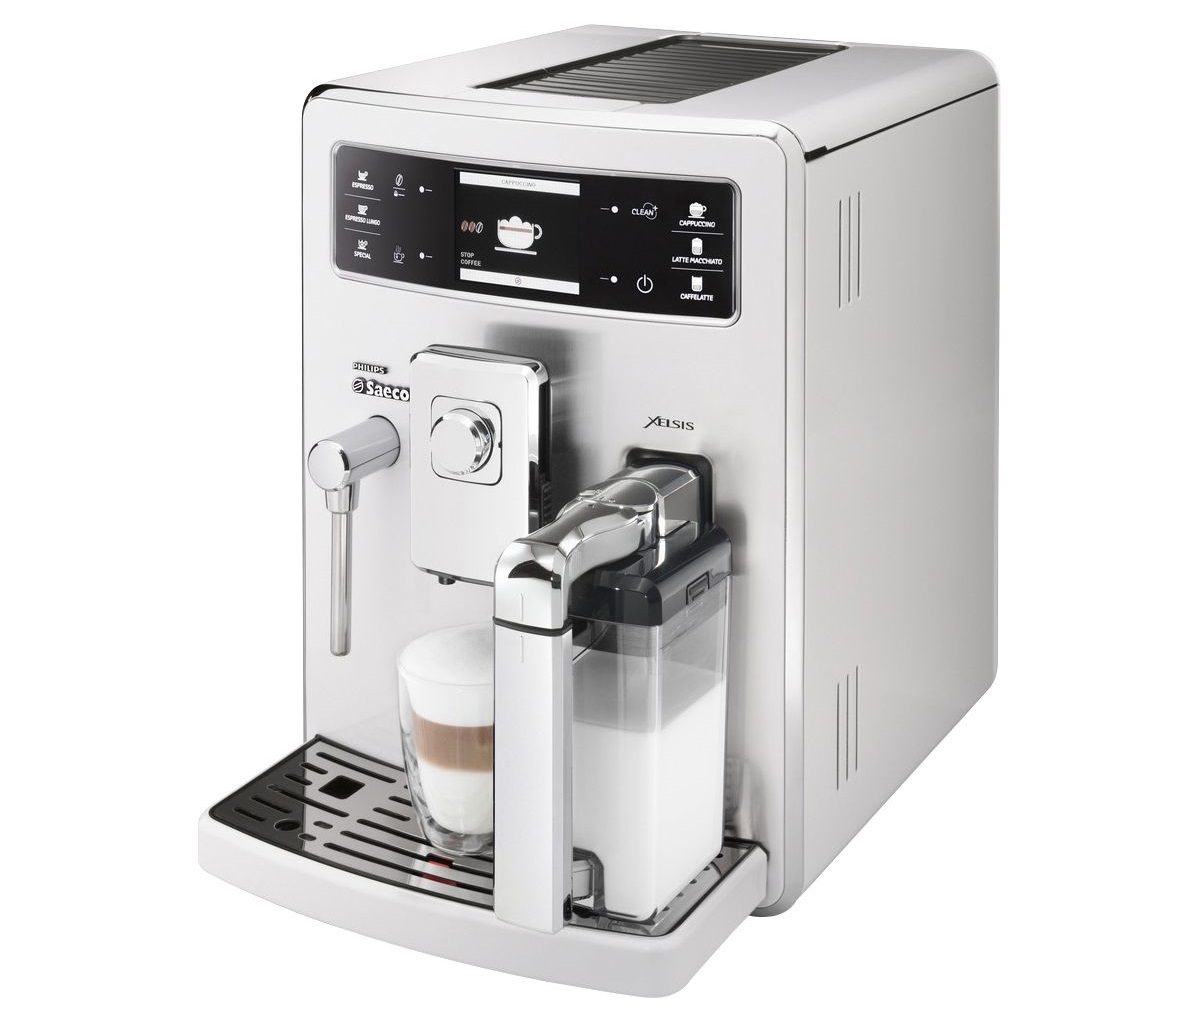 Machine Expresso Avec Broyeur Machine Caf Broyeur Stunning Moulin Caf Machine Caf